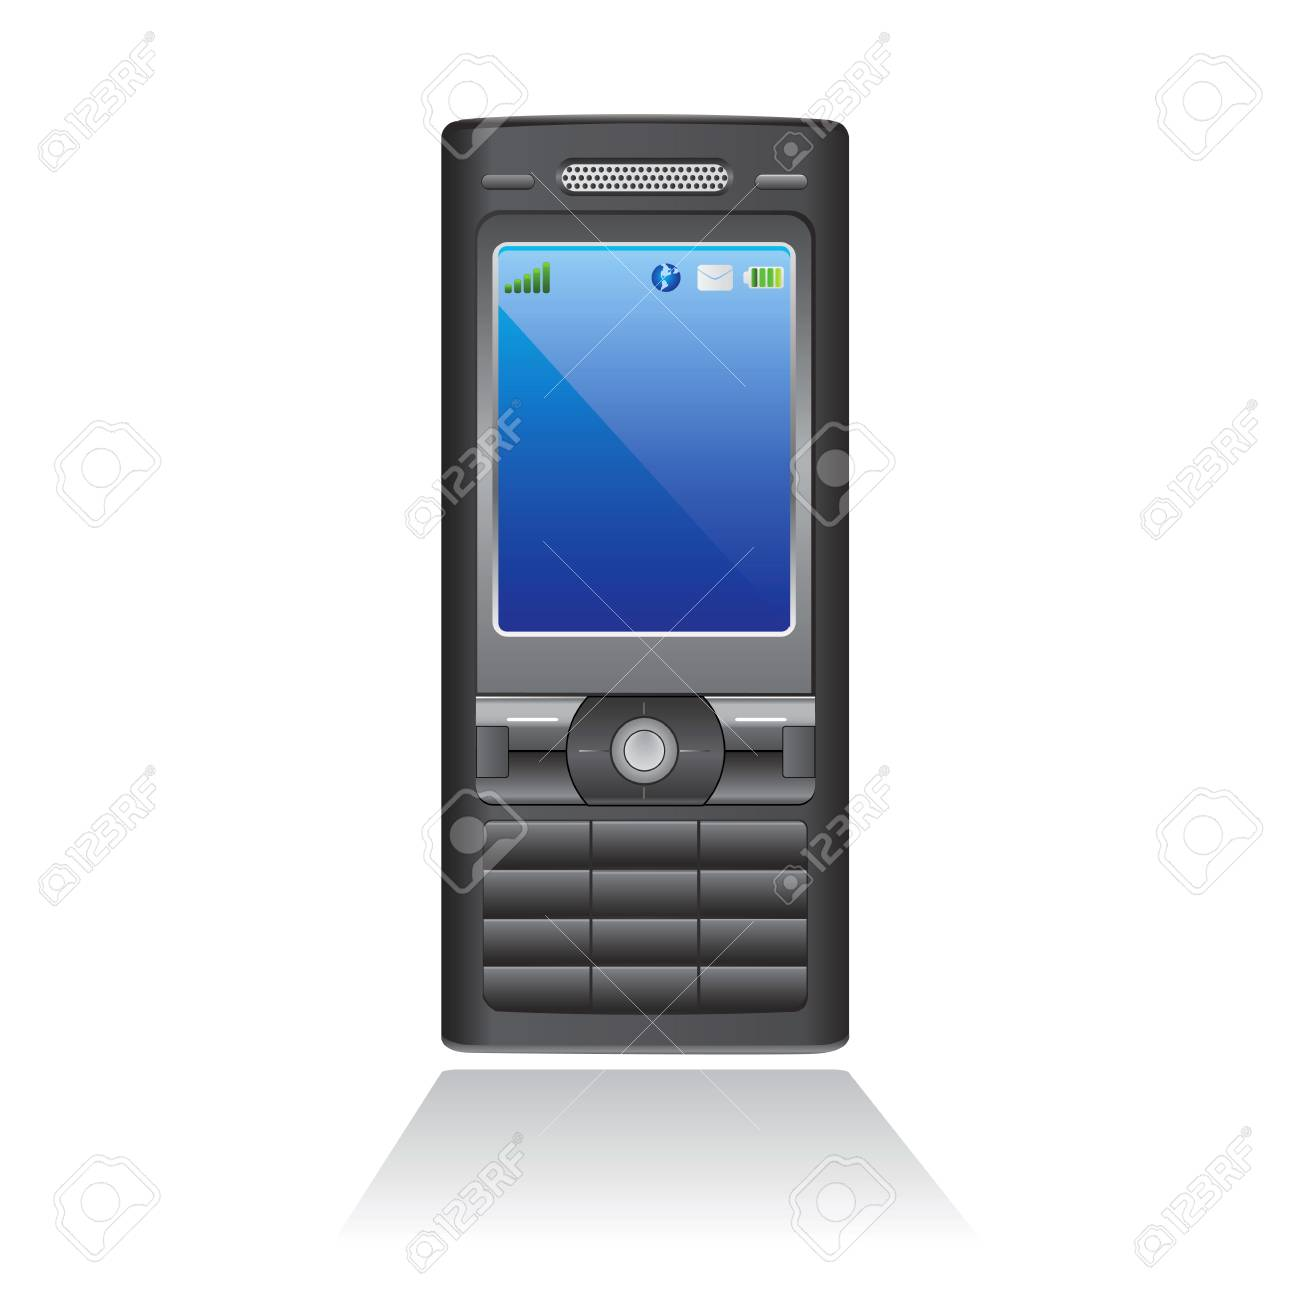 mobile phone Stock Vector - 8684880